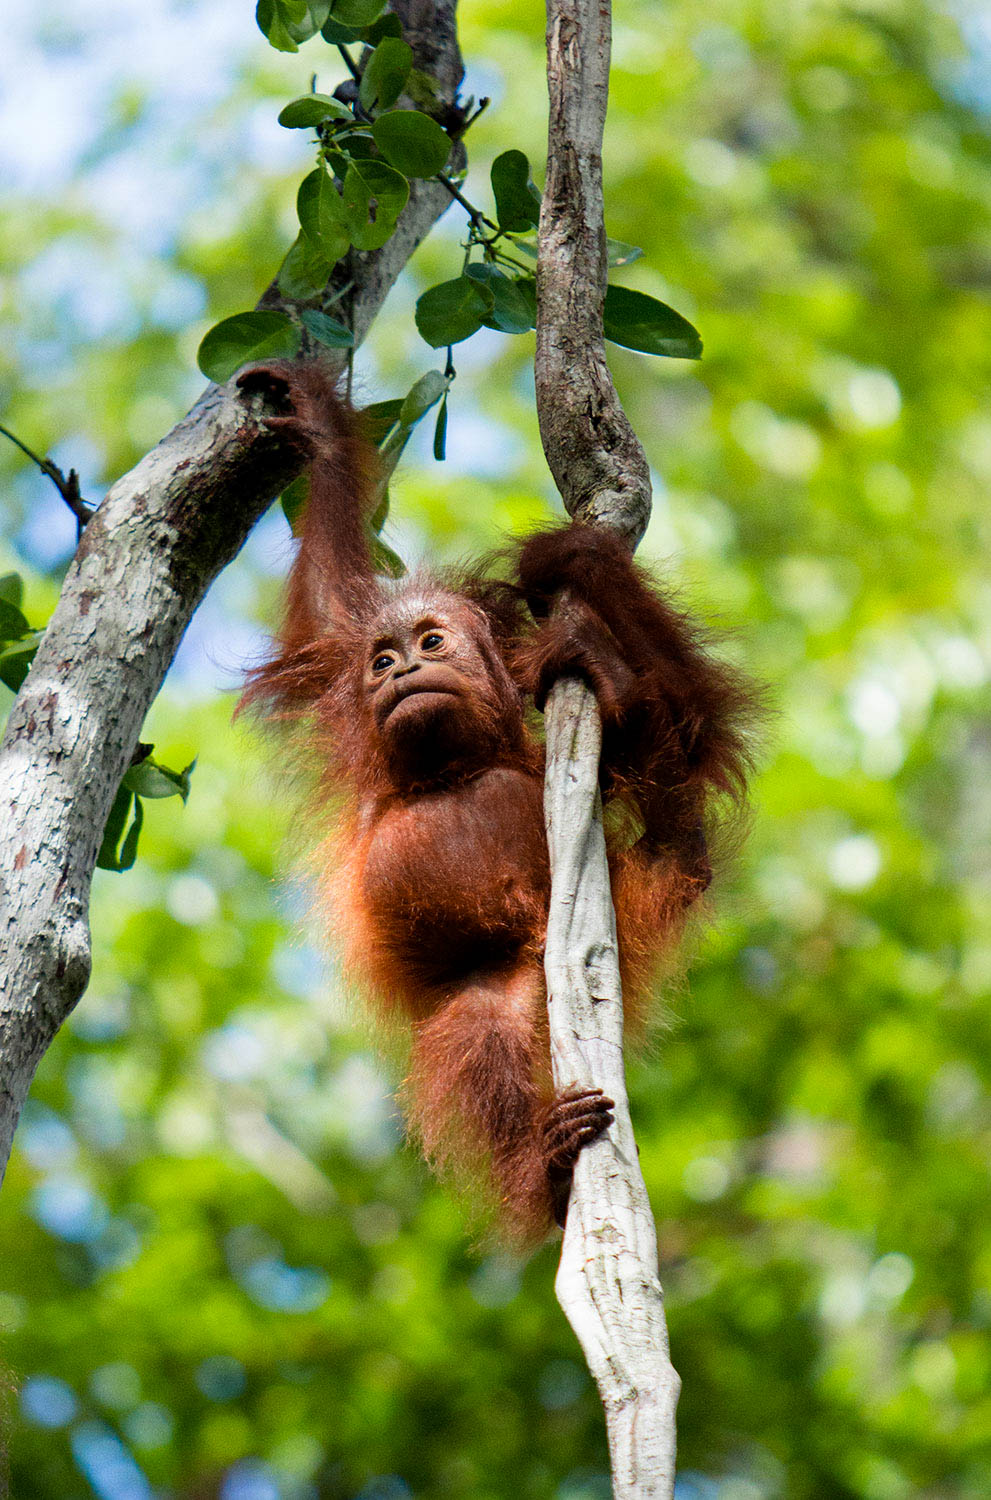 Orangutan Baby On Branch